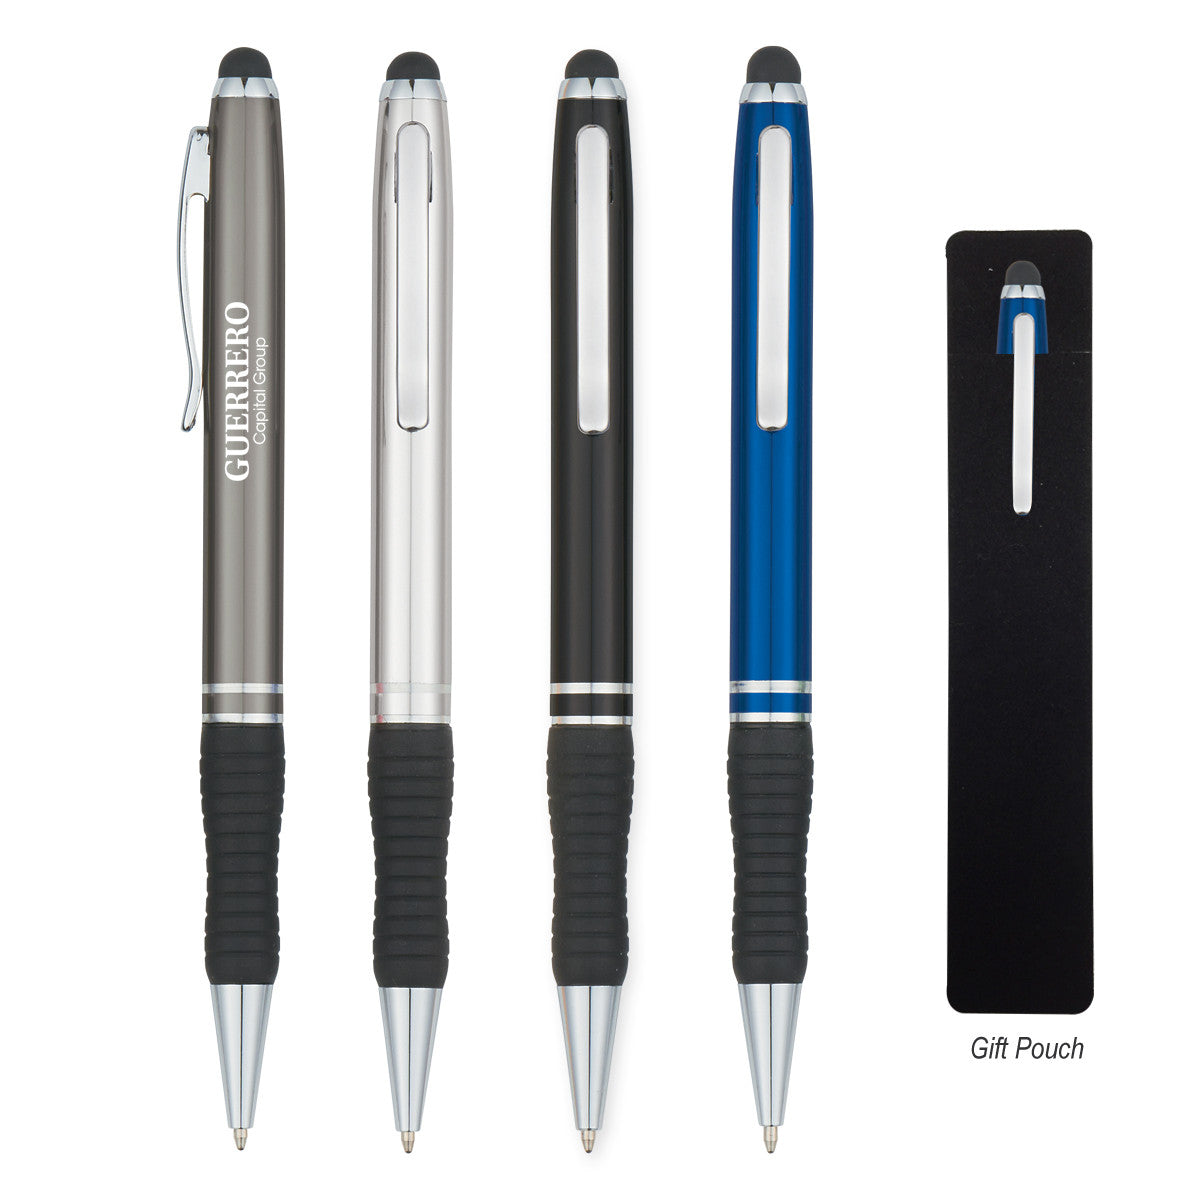 Metal Stylus Pen with Rubber Grip